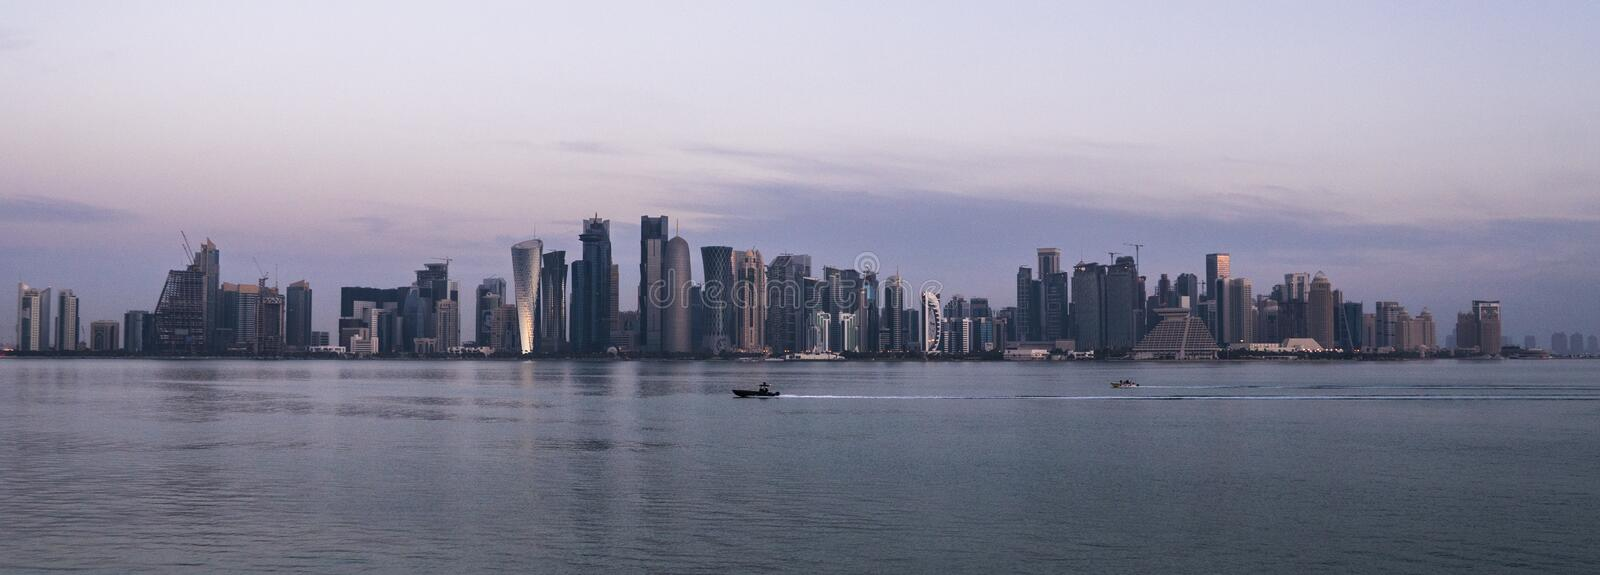 Morning Twilight Doha Skyline View. Qatar, Middle East. Persian Gulf royalty free stock images